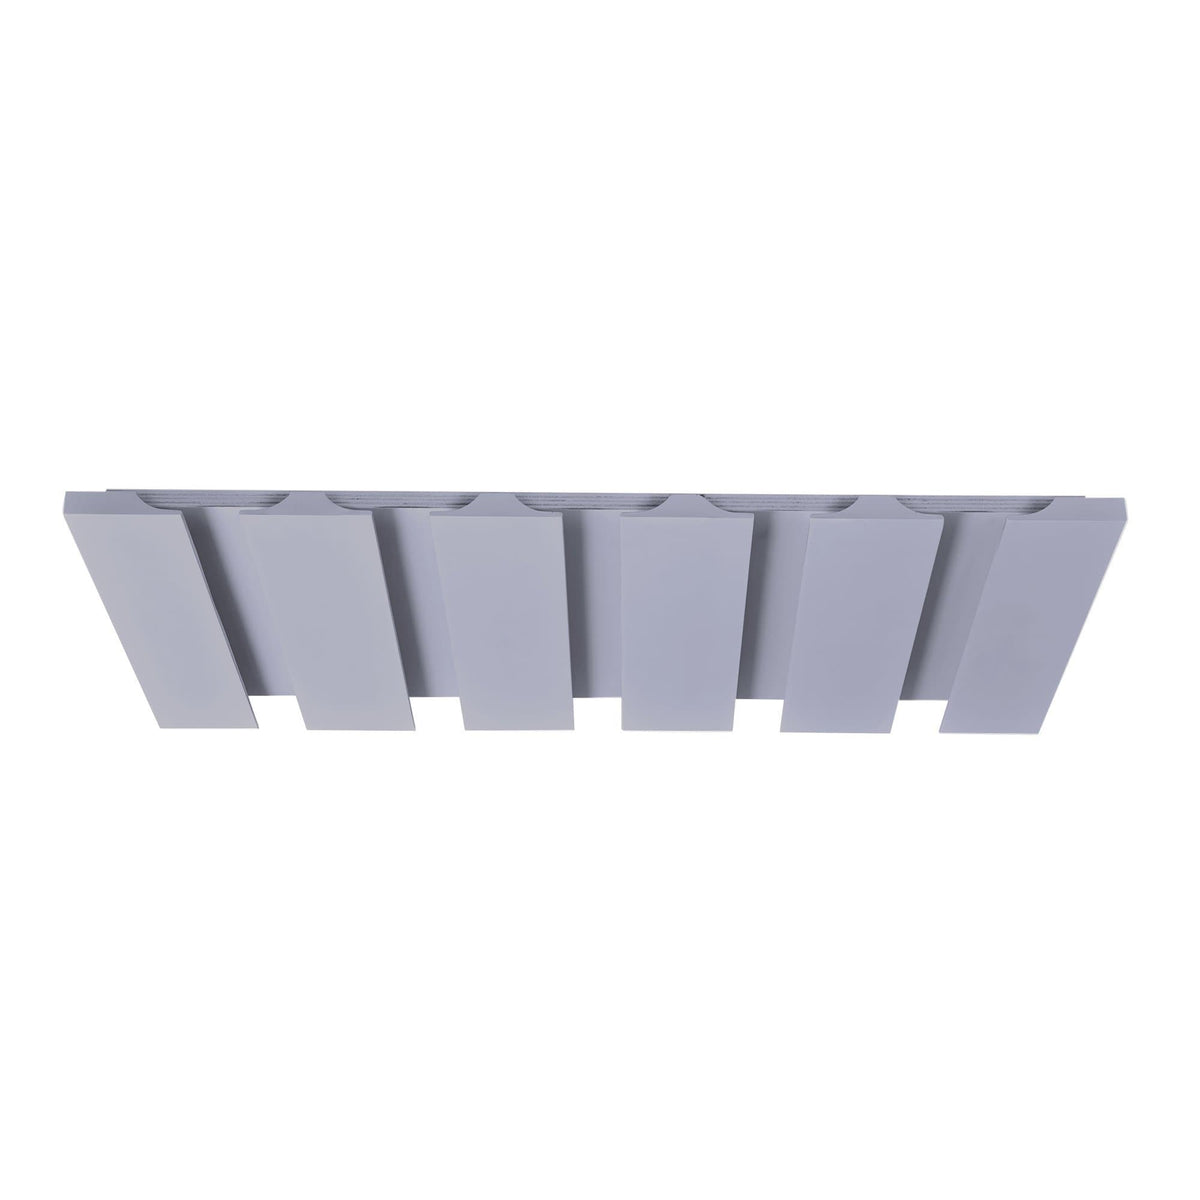 "Accessories 30"" Wide Glass Holder Inset Light Gray Shaker Shelf D2GH3015 Inset Kitchen Cabinets"